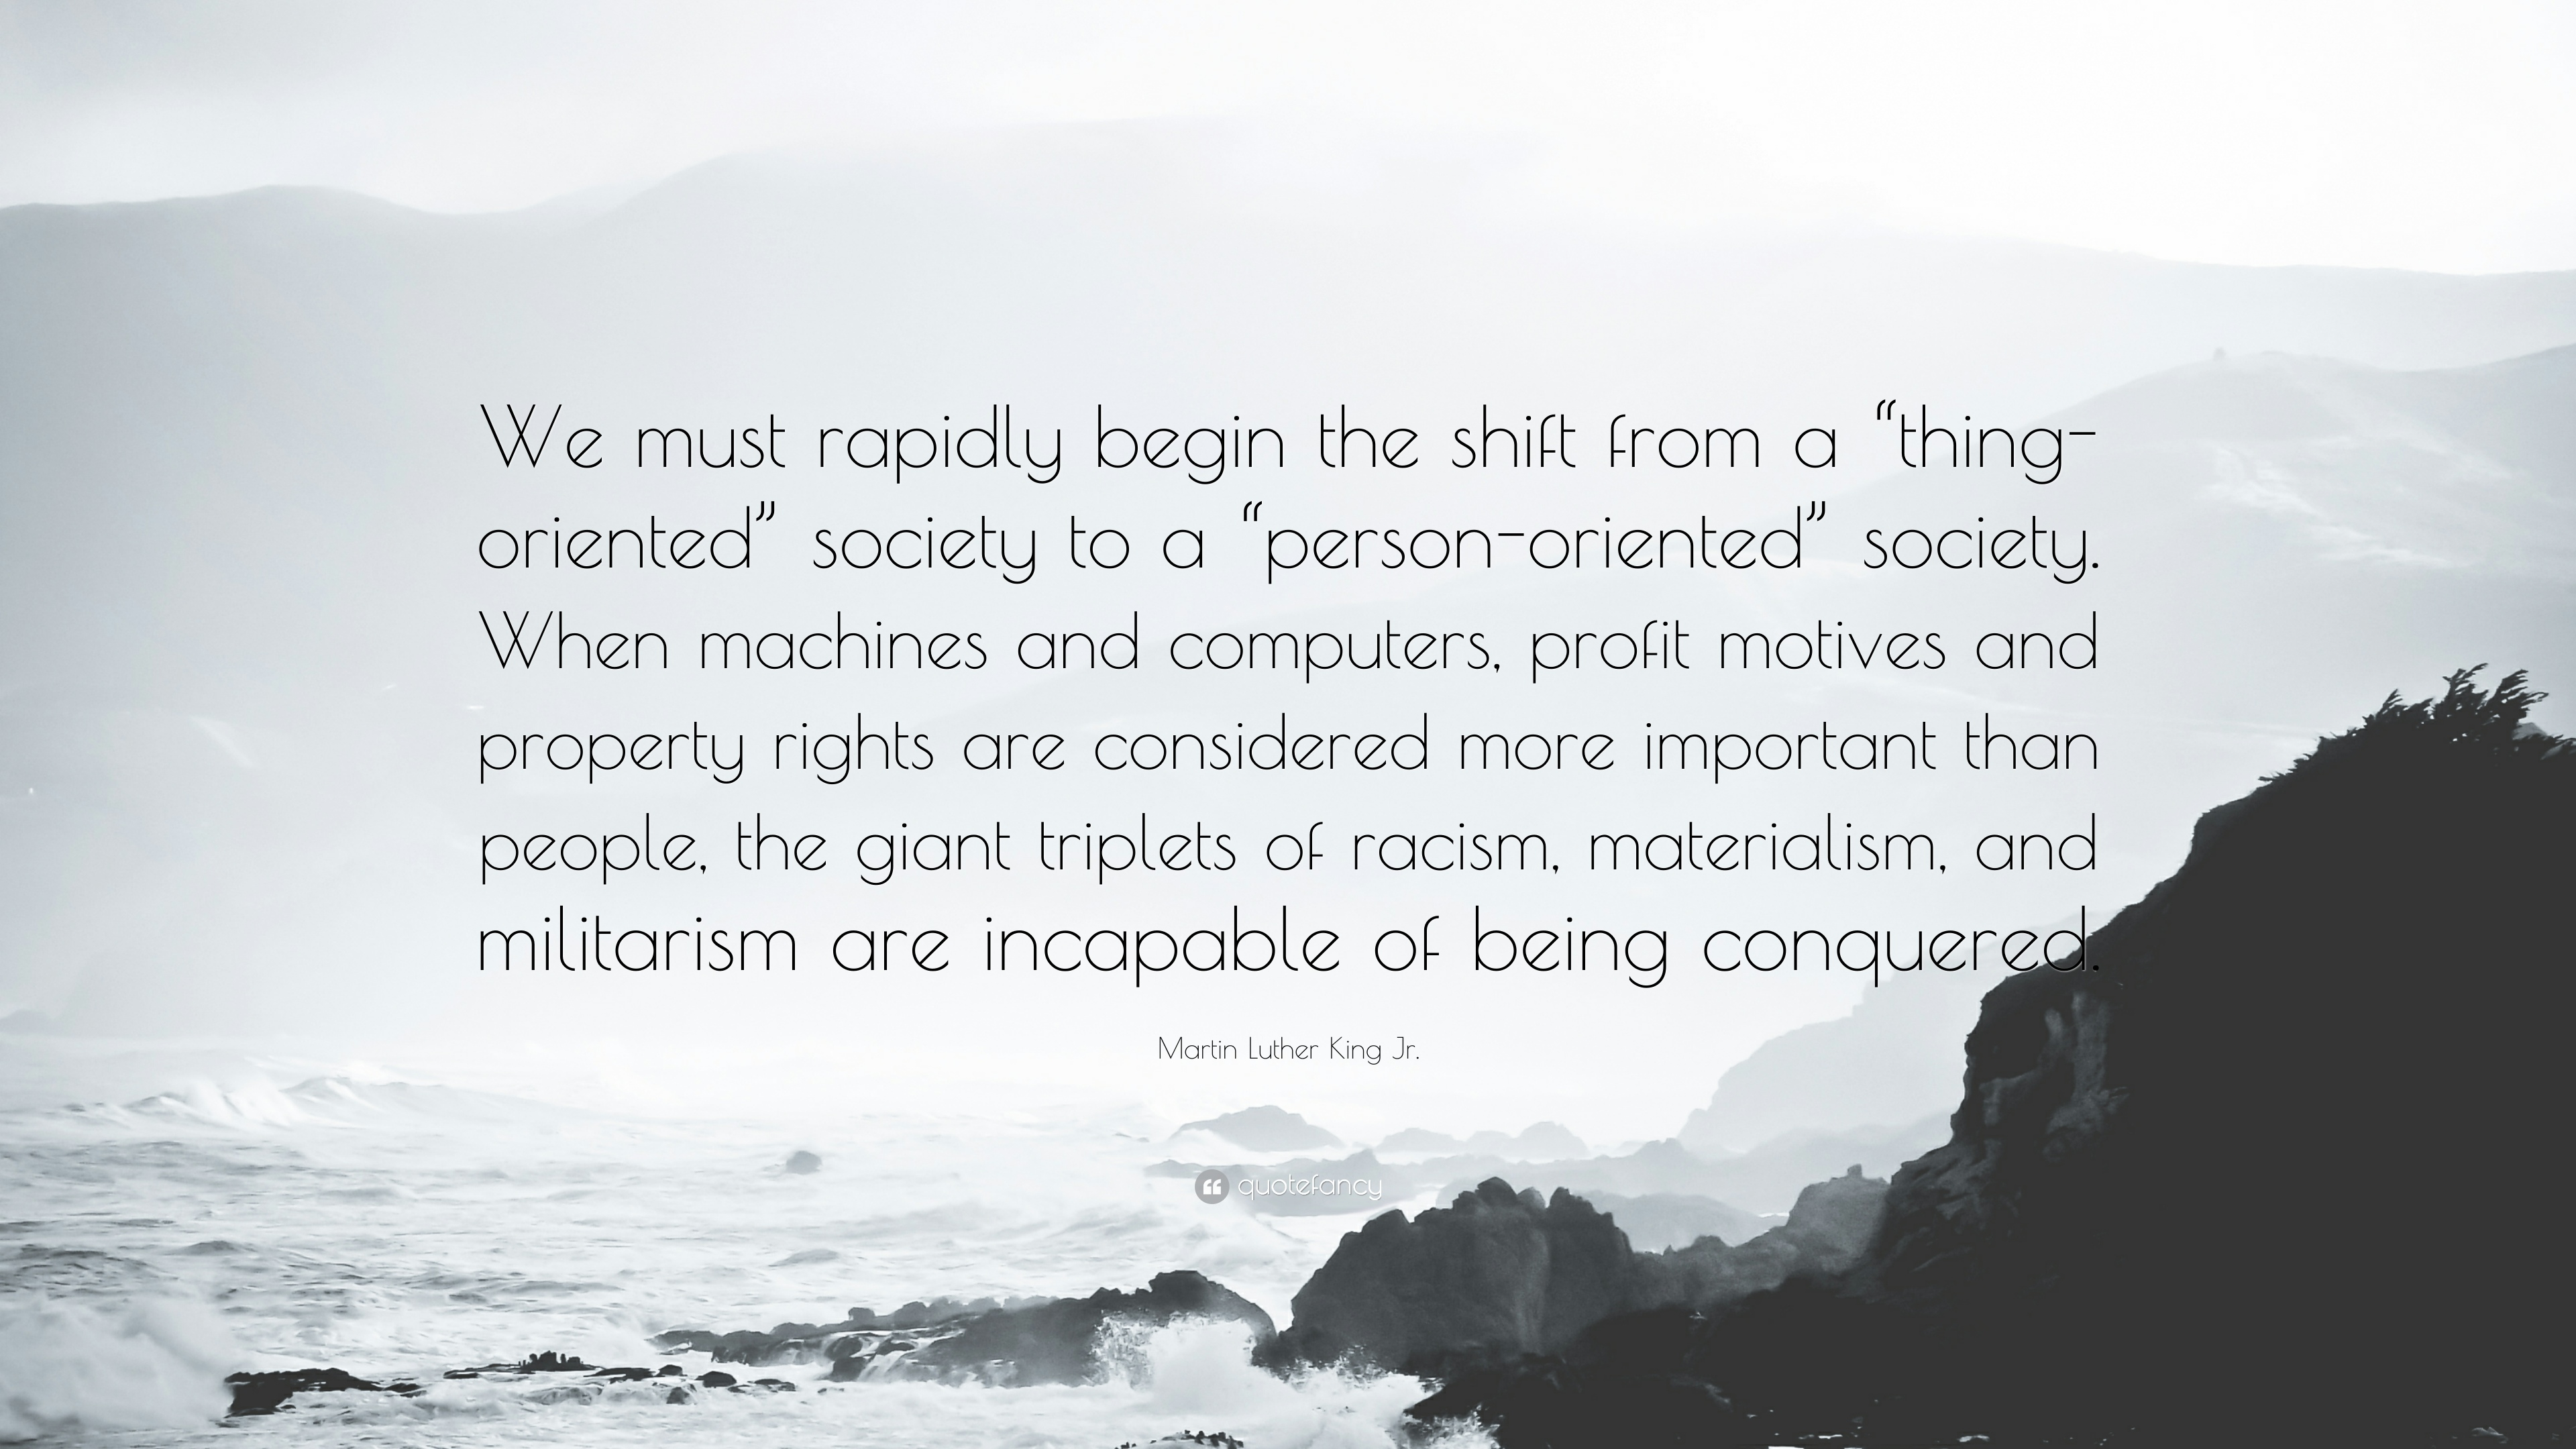 martin luther king jr quote we must rapidly begin the shift martin luther king jr quote we must rapidly begin the shift from a